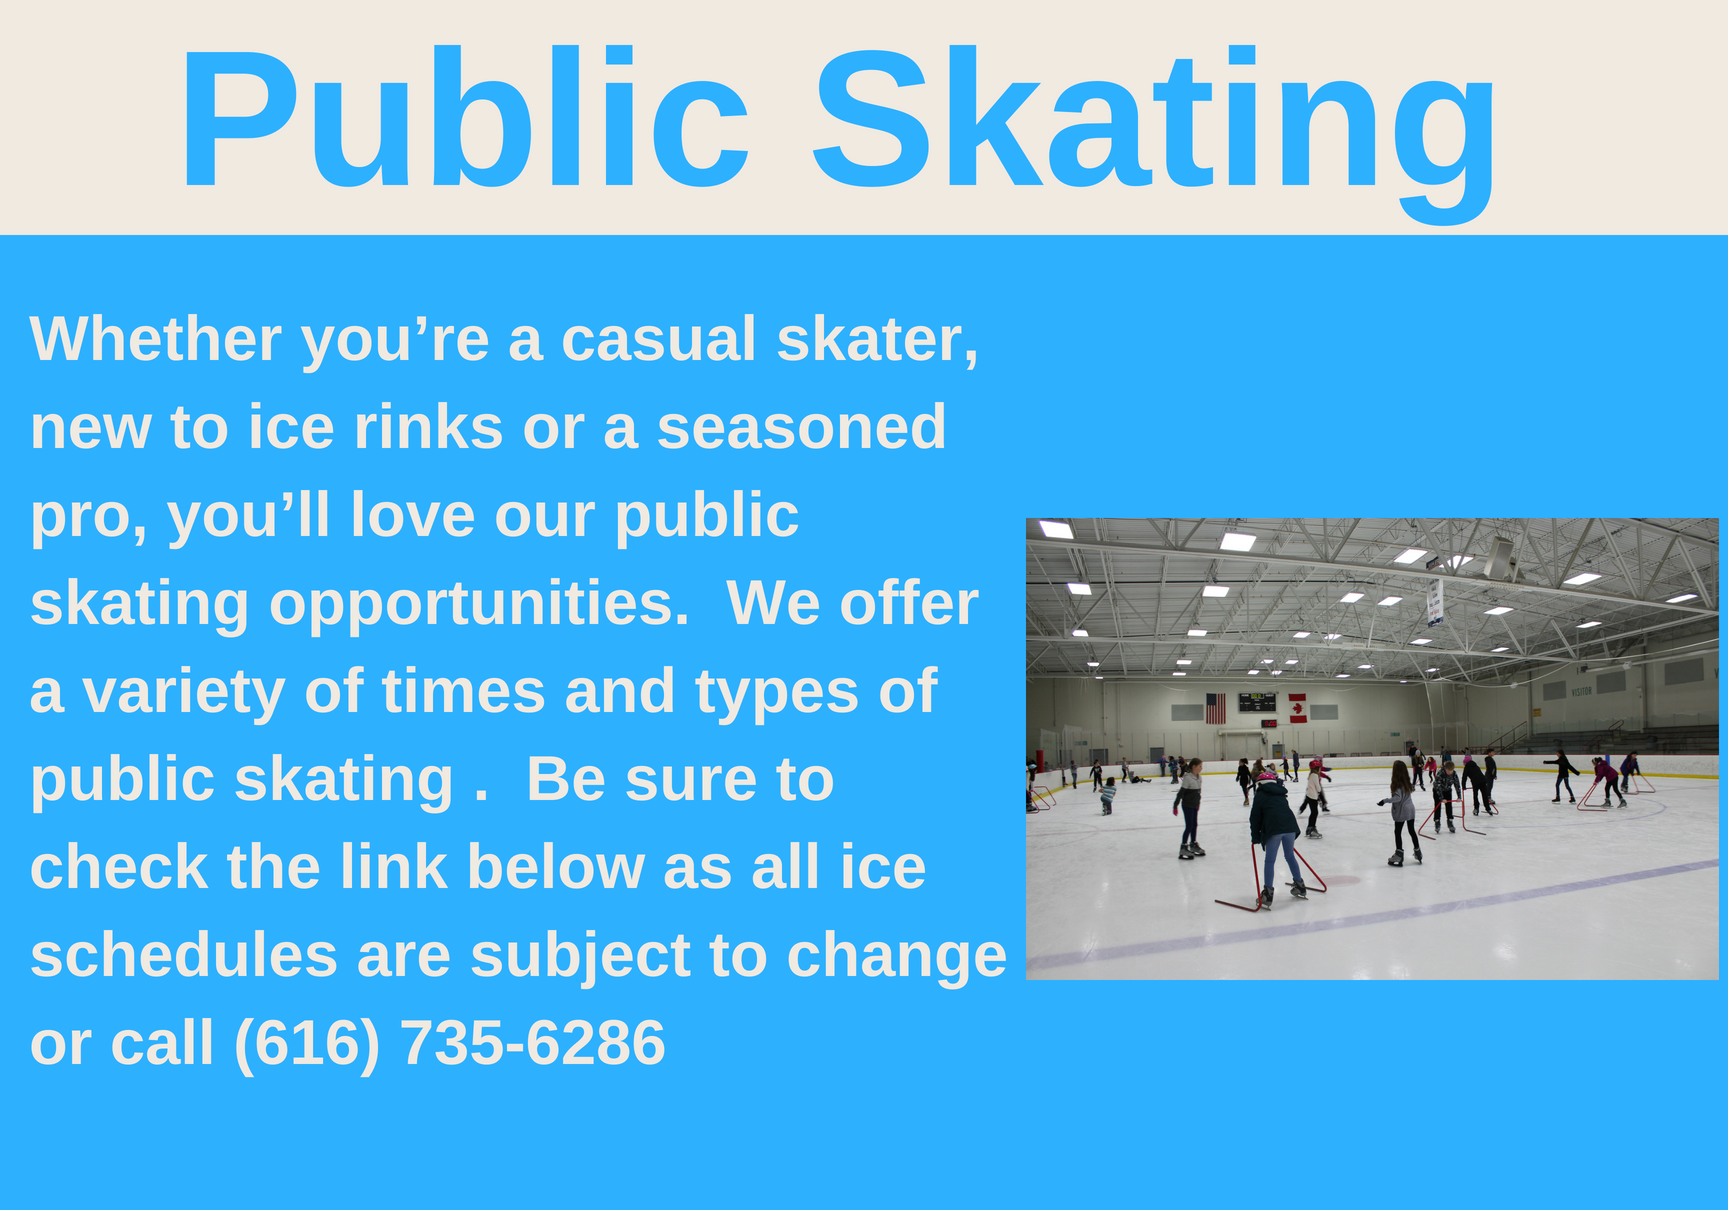 061418 - Skating info update - Copy